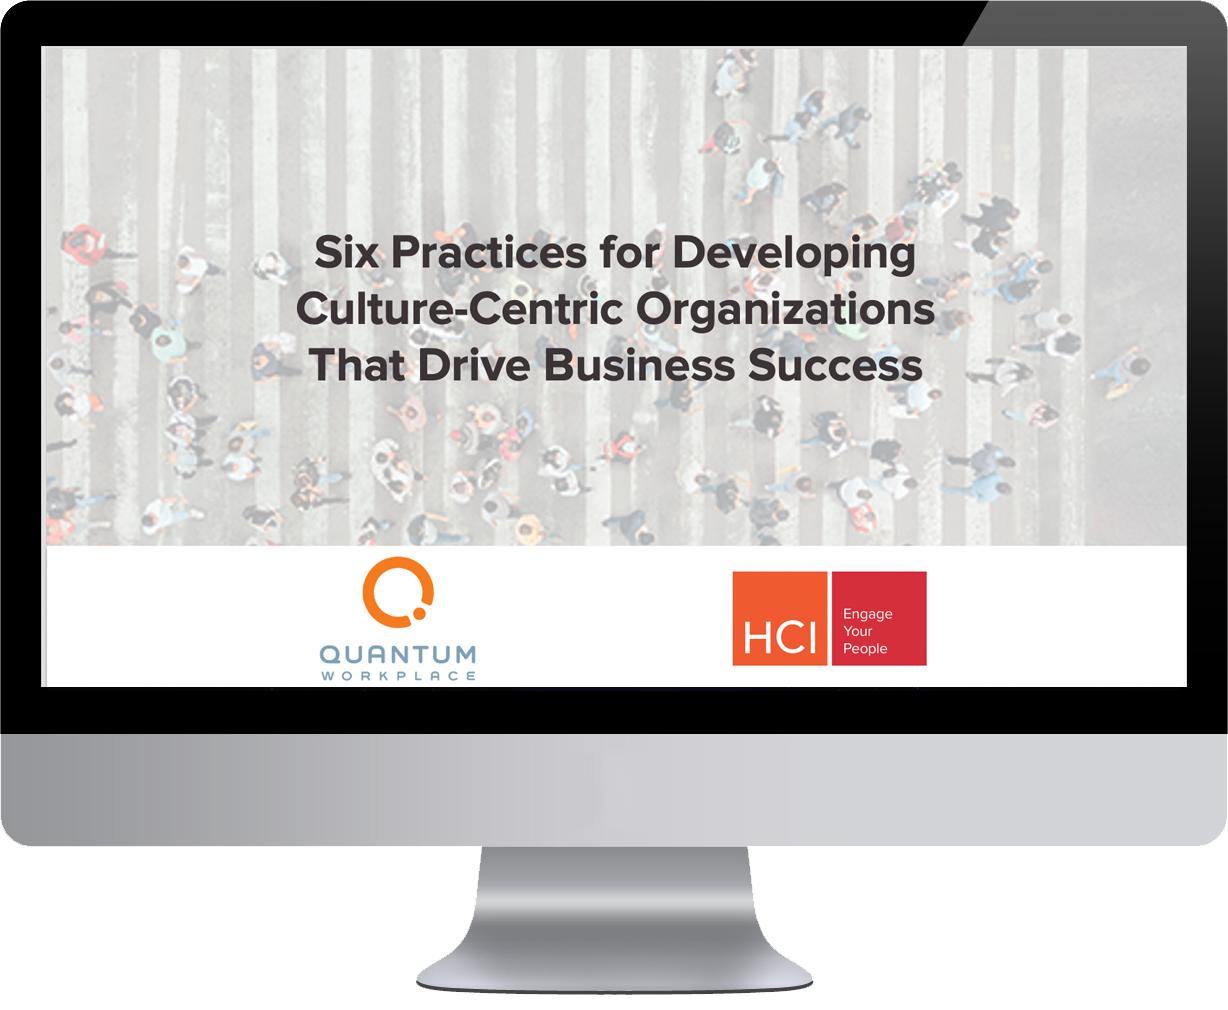 6 Practices for Developing Culture Centric Organizations